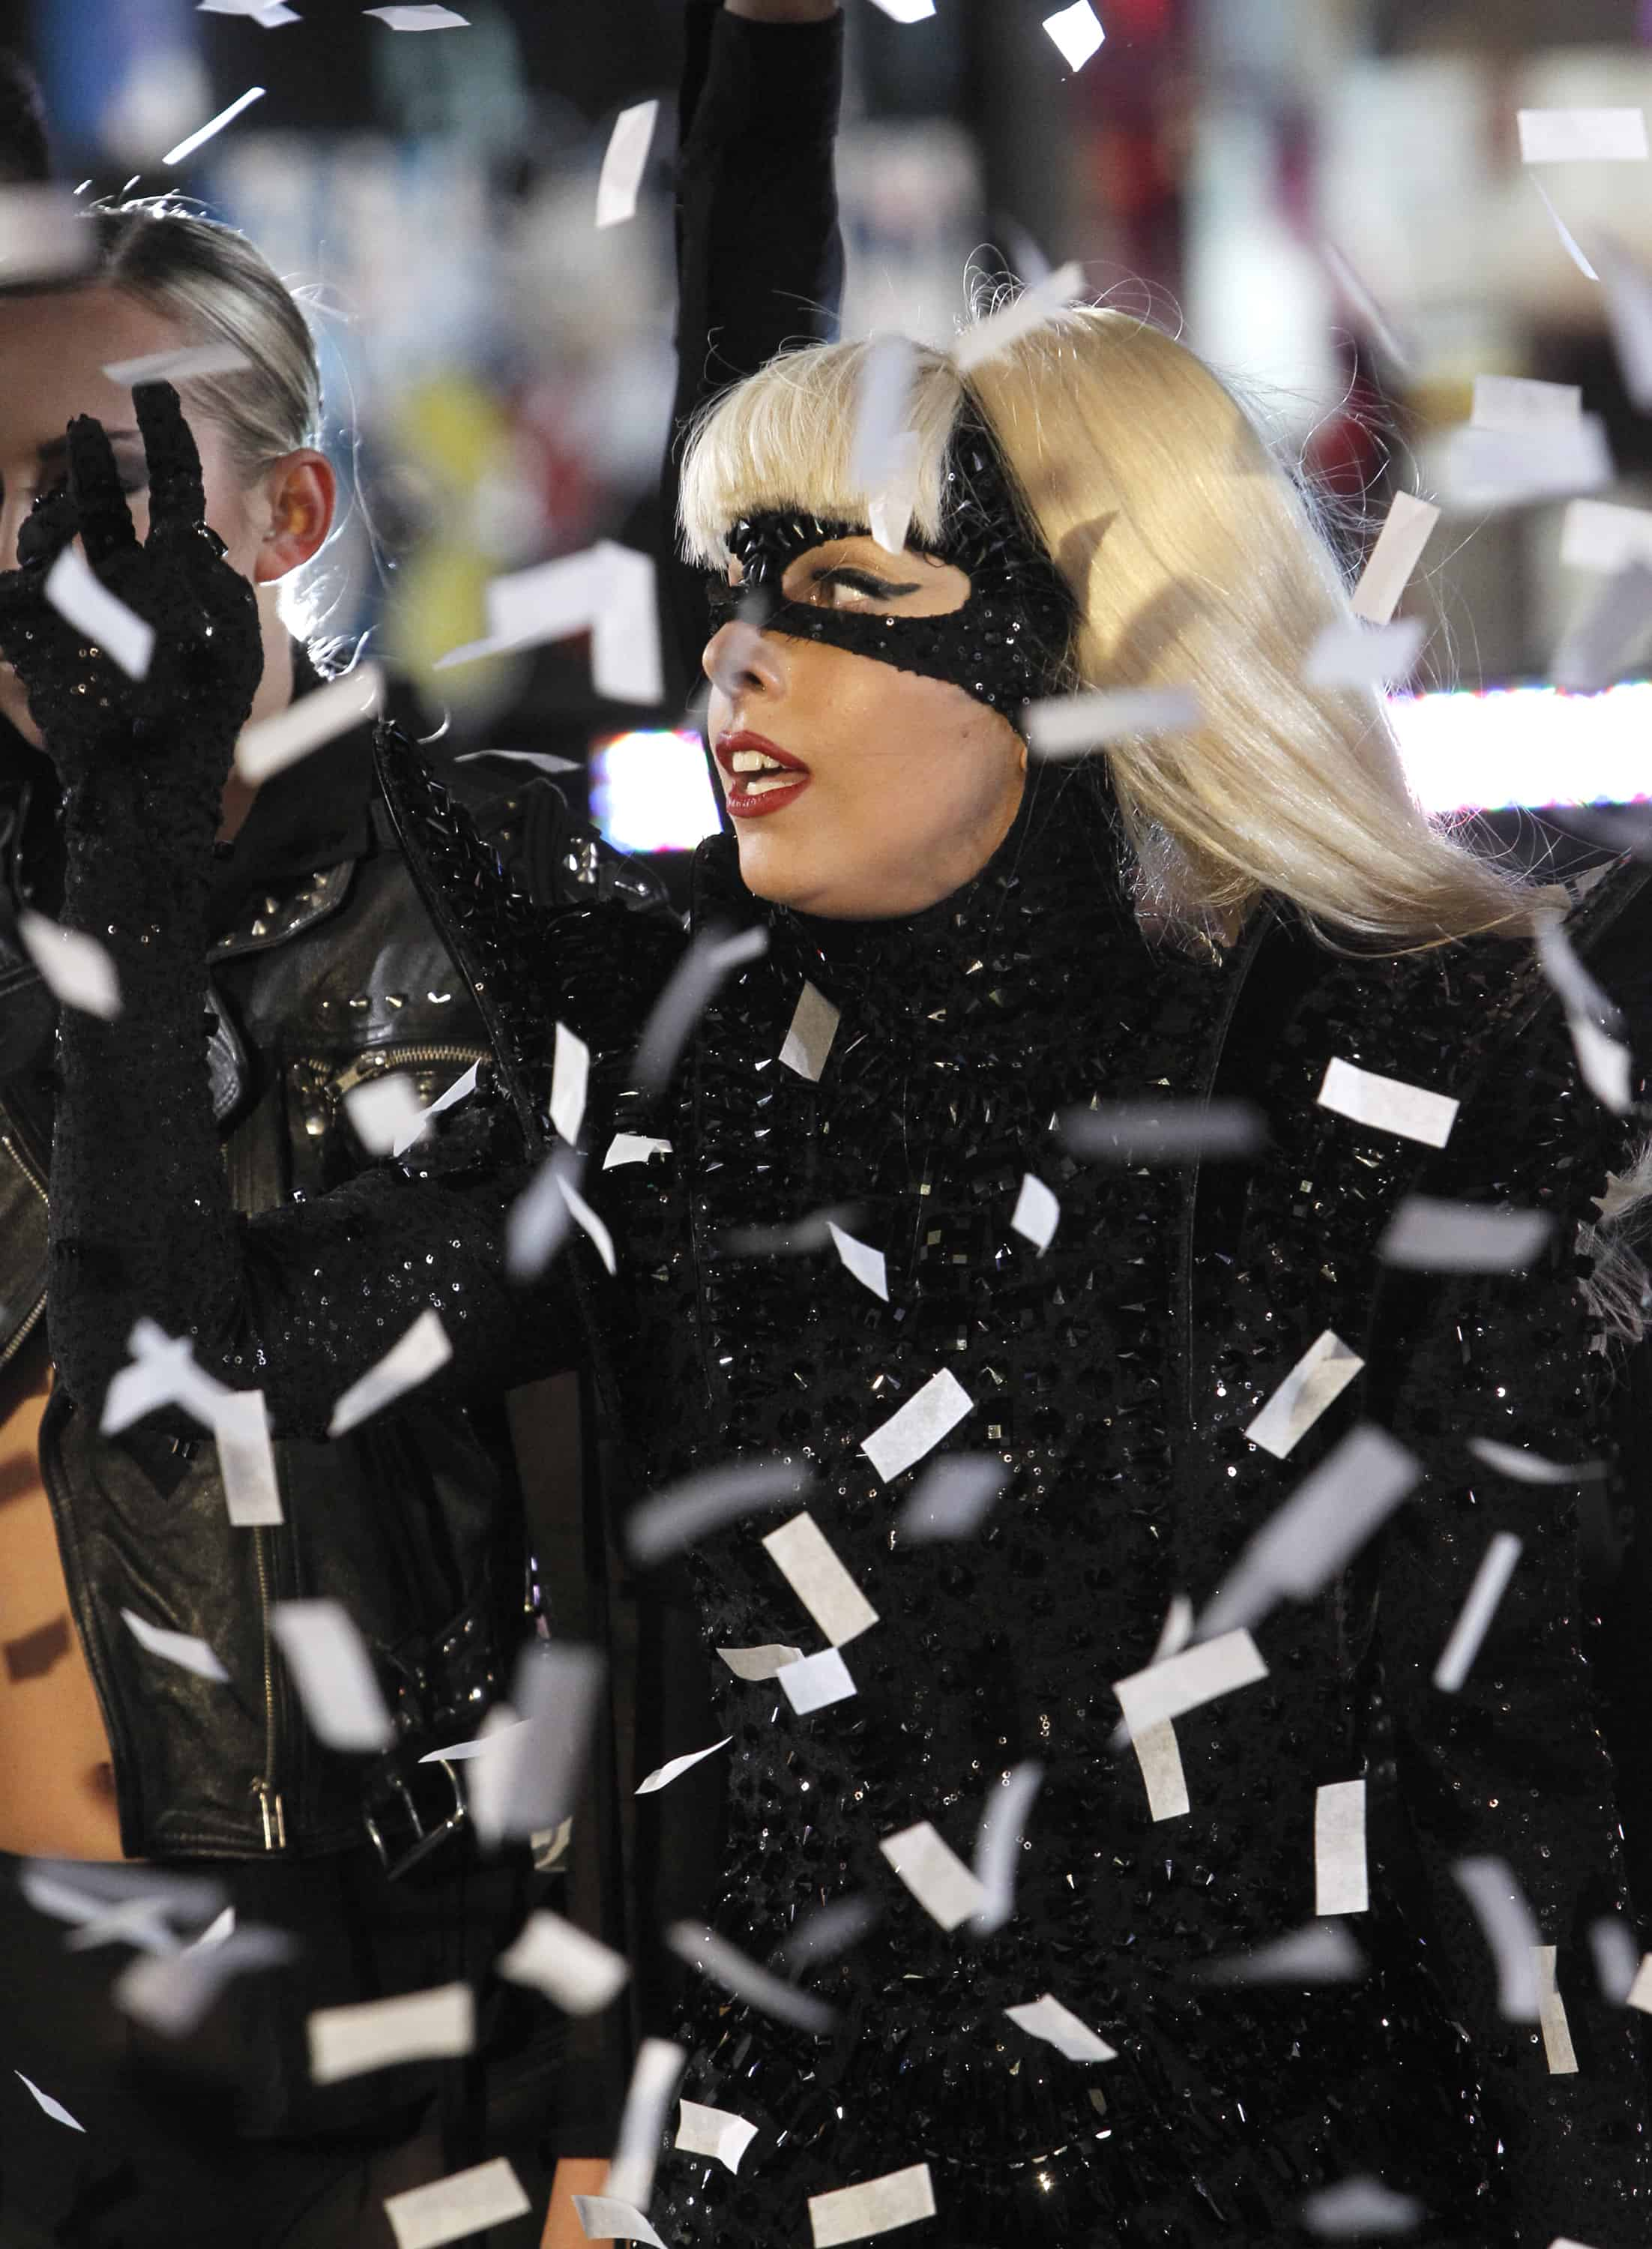 LADY GAGA PERFORMS IN TIMES SQUARE